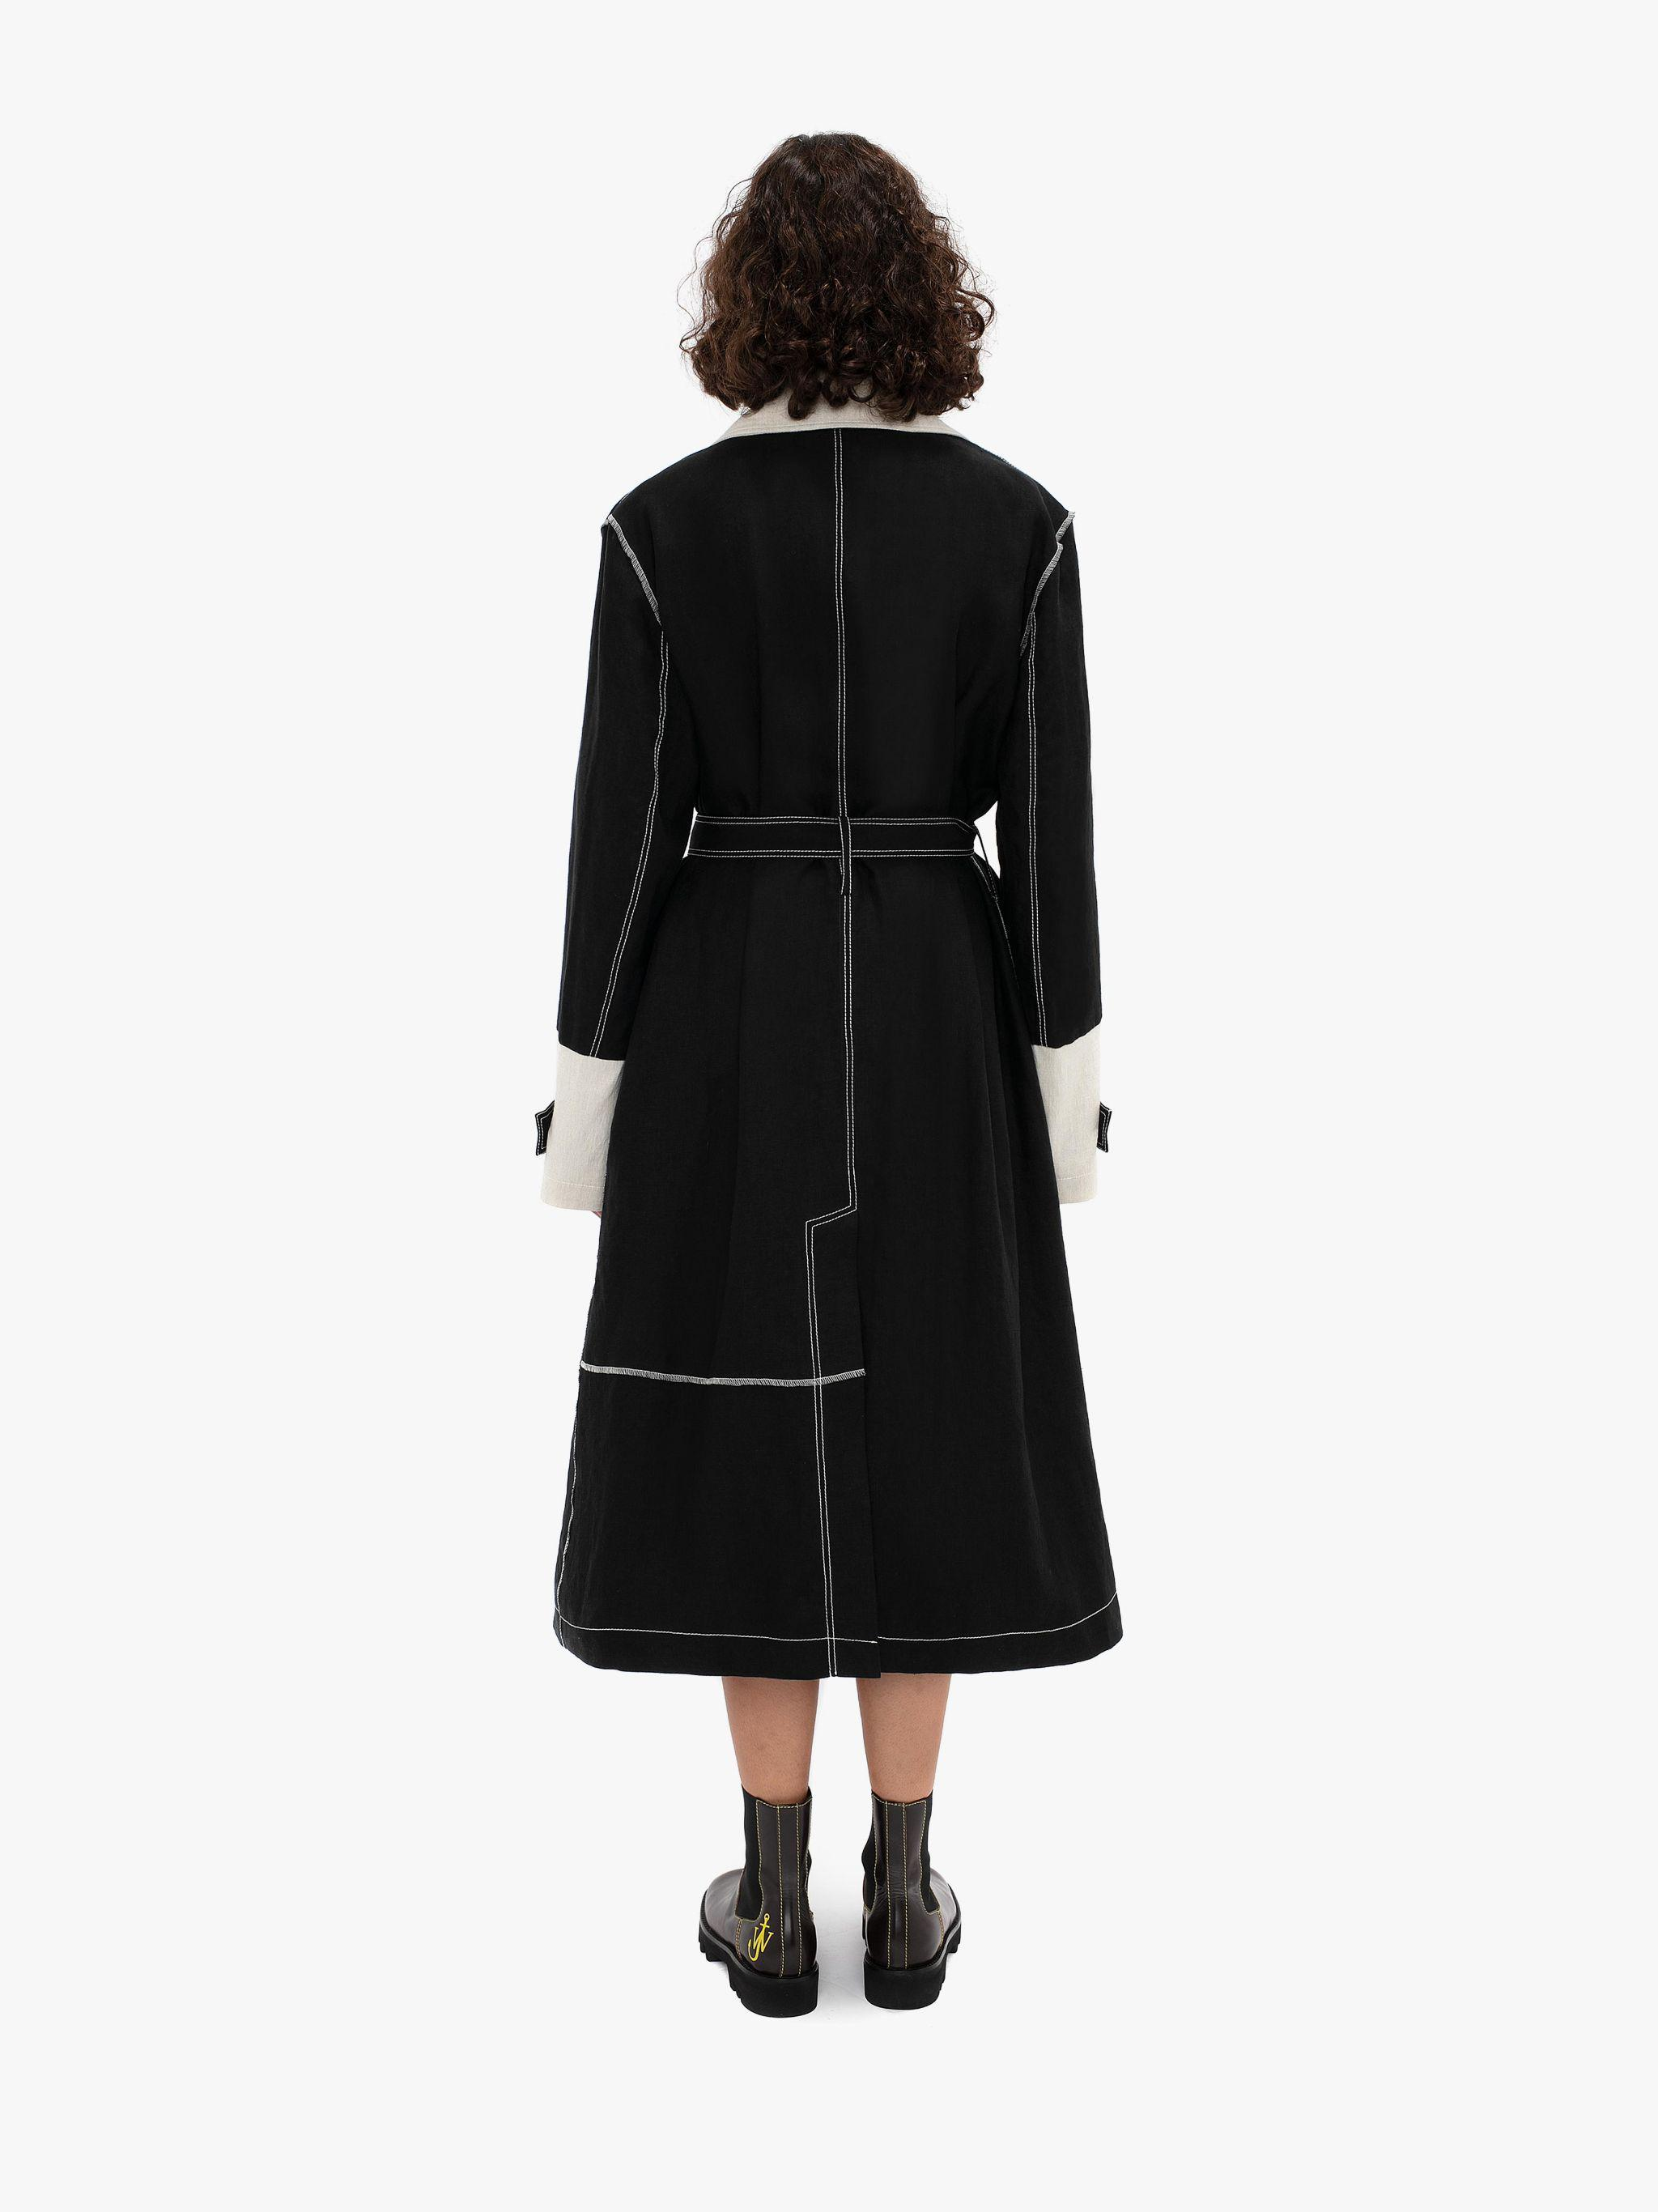 MADE IN BRITAIN: TRENCH COAT 3